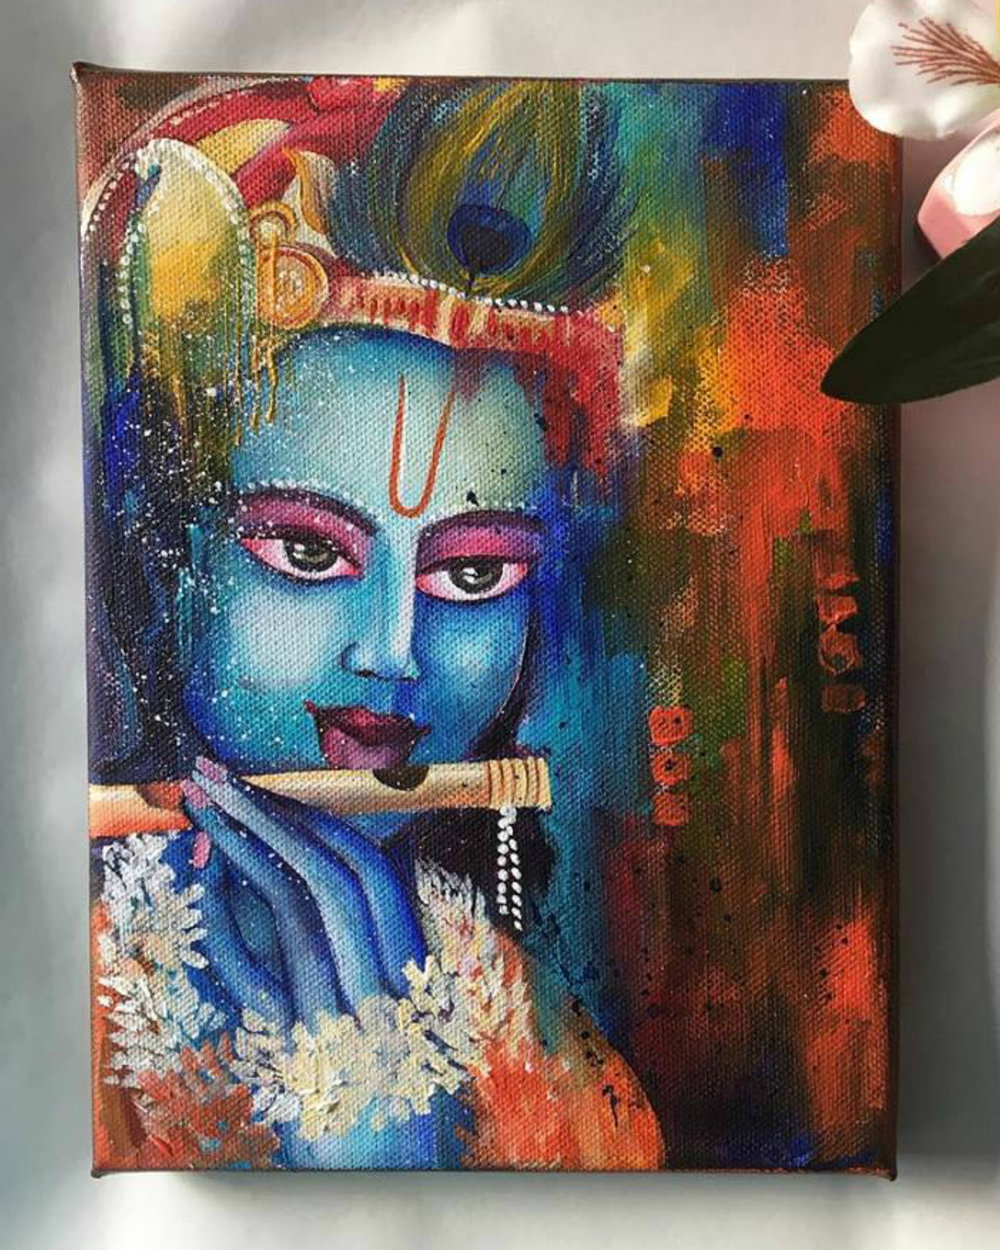 """ Krishna with the flute """